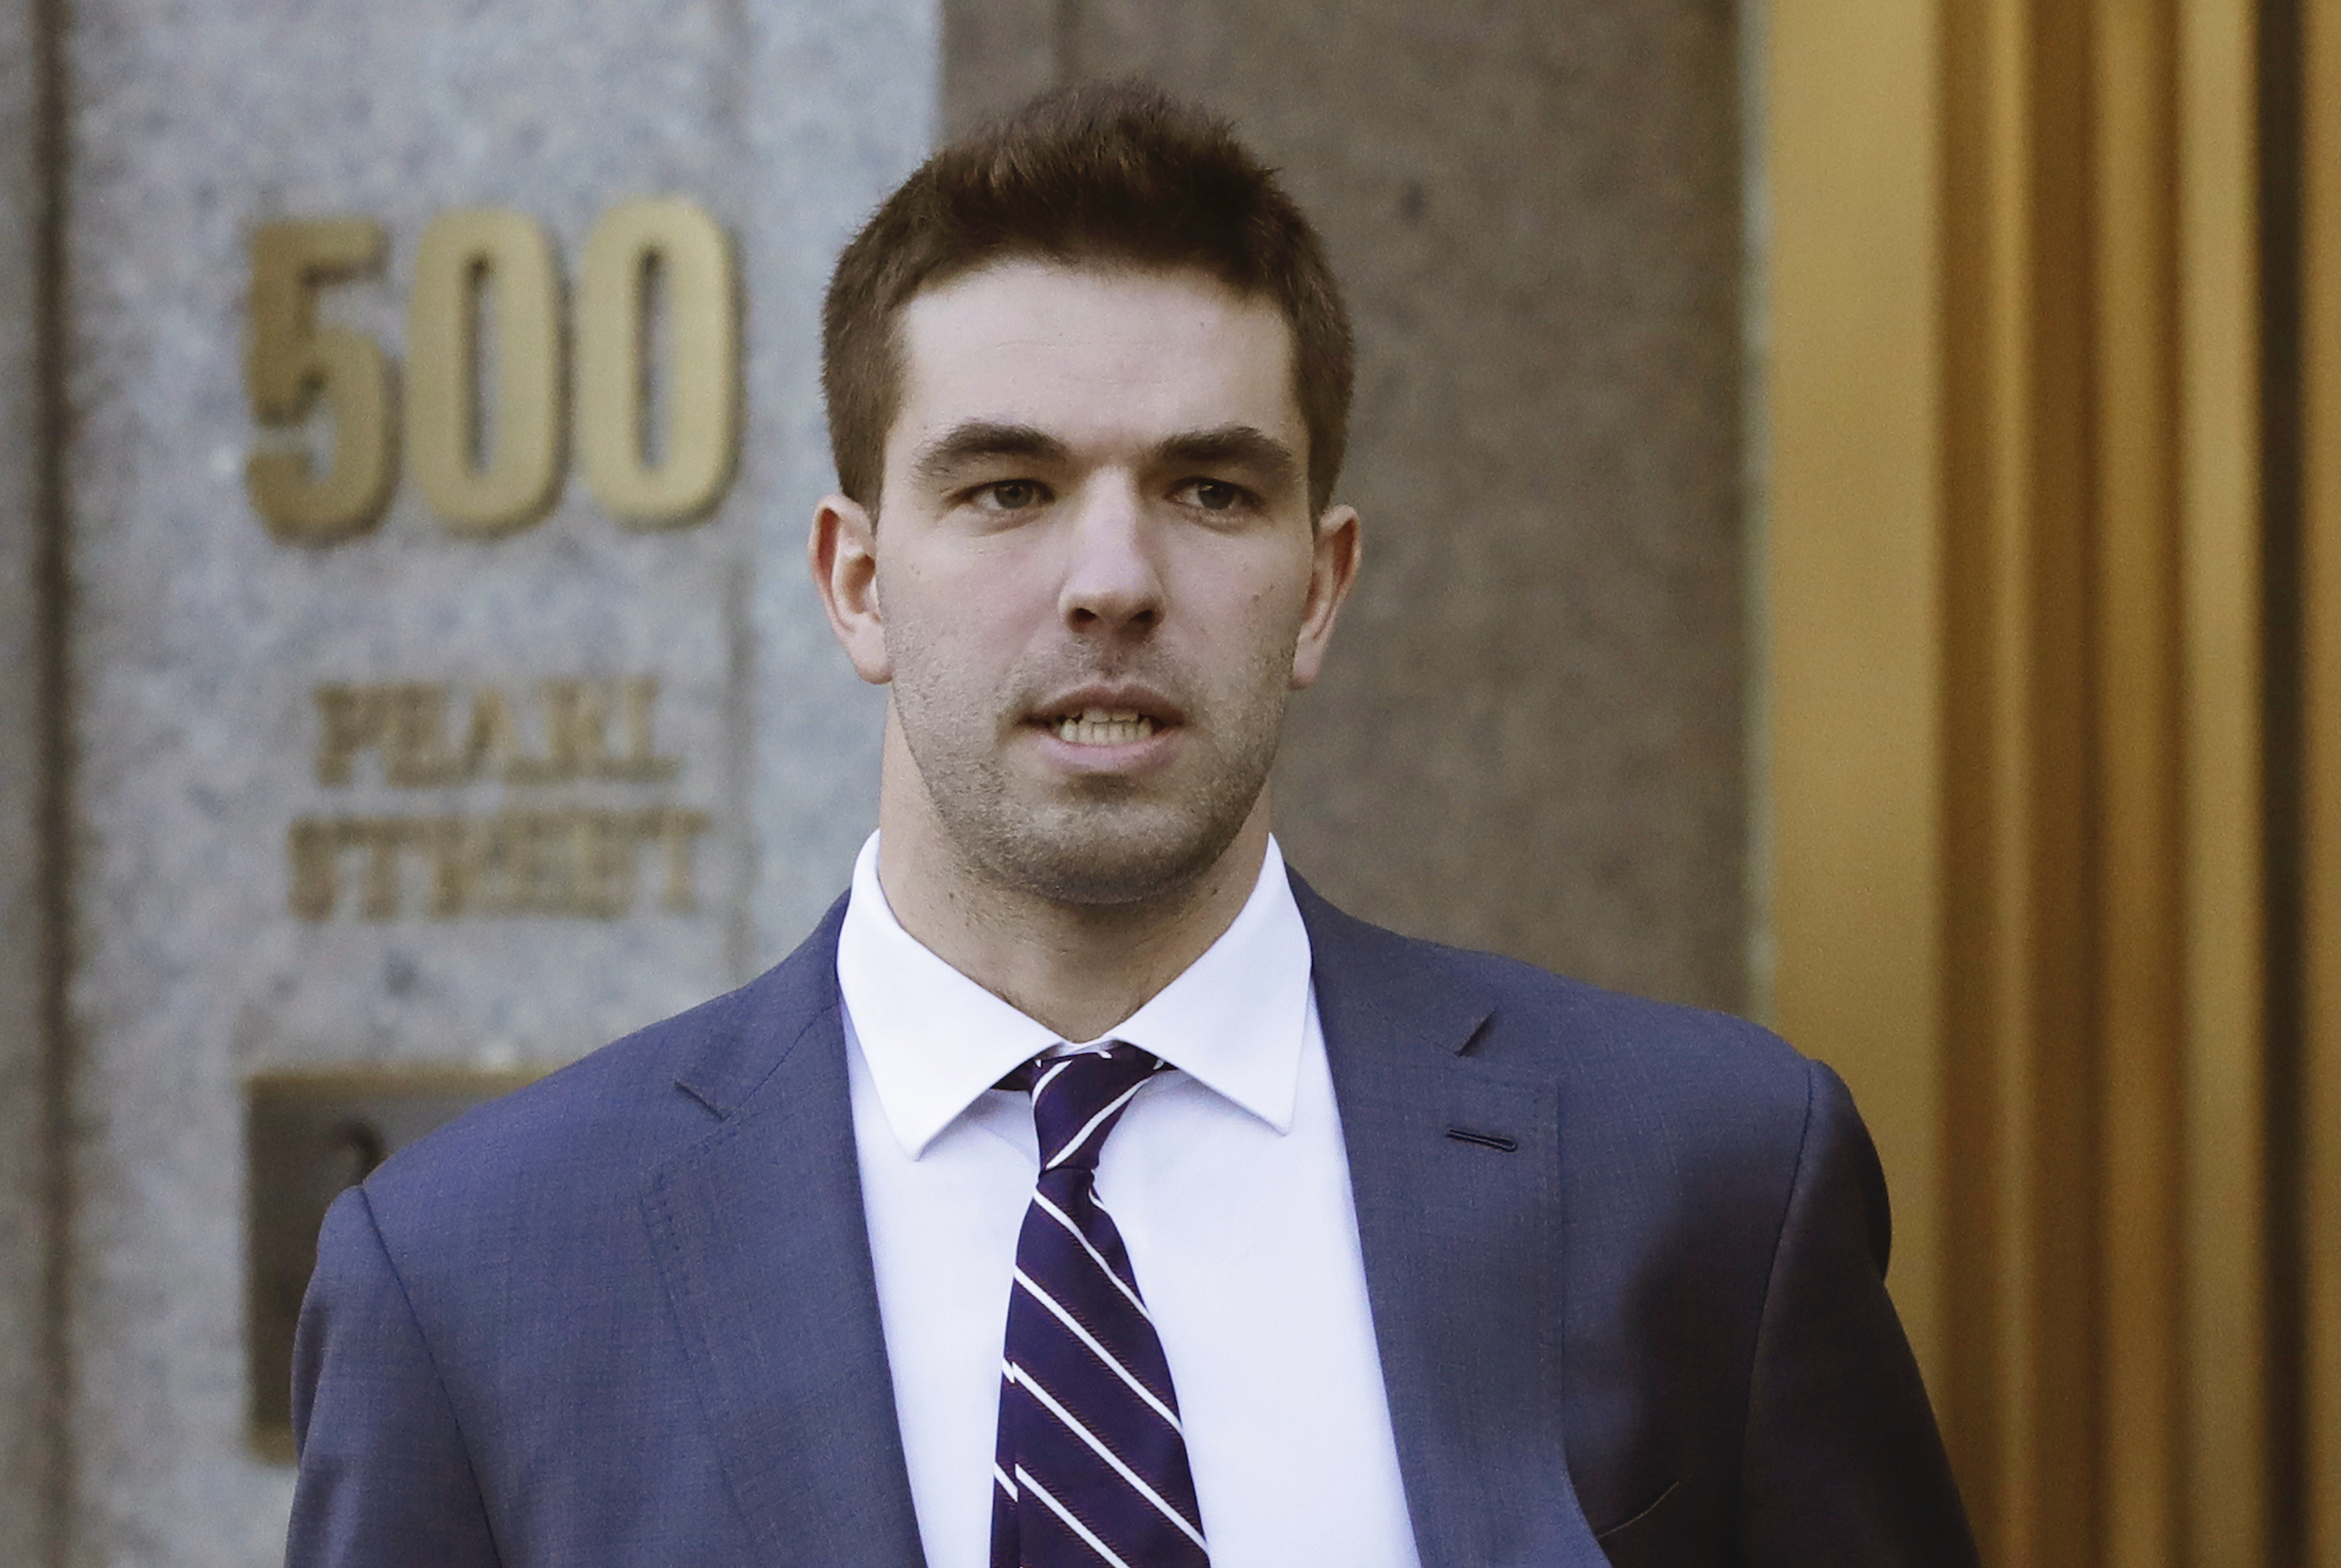 Billy McFarland, the promoter of the failed Fyre Festival in the Bahamas, leaves federal court after pleading guilty to wire fraud charges in New York, on March 6, 2018.